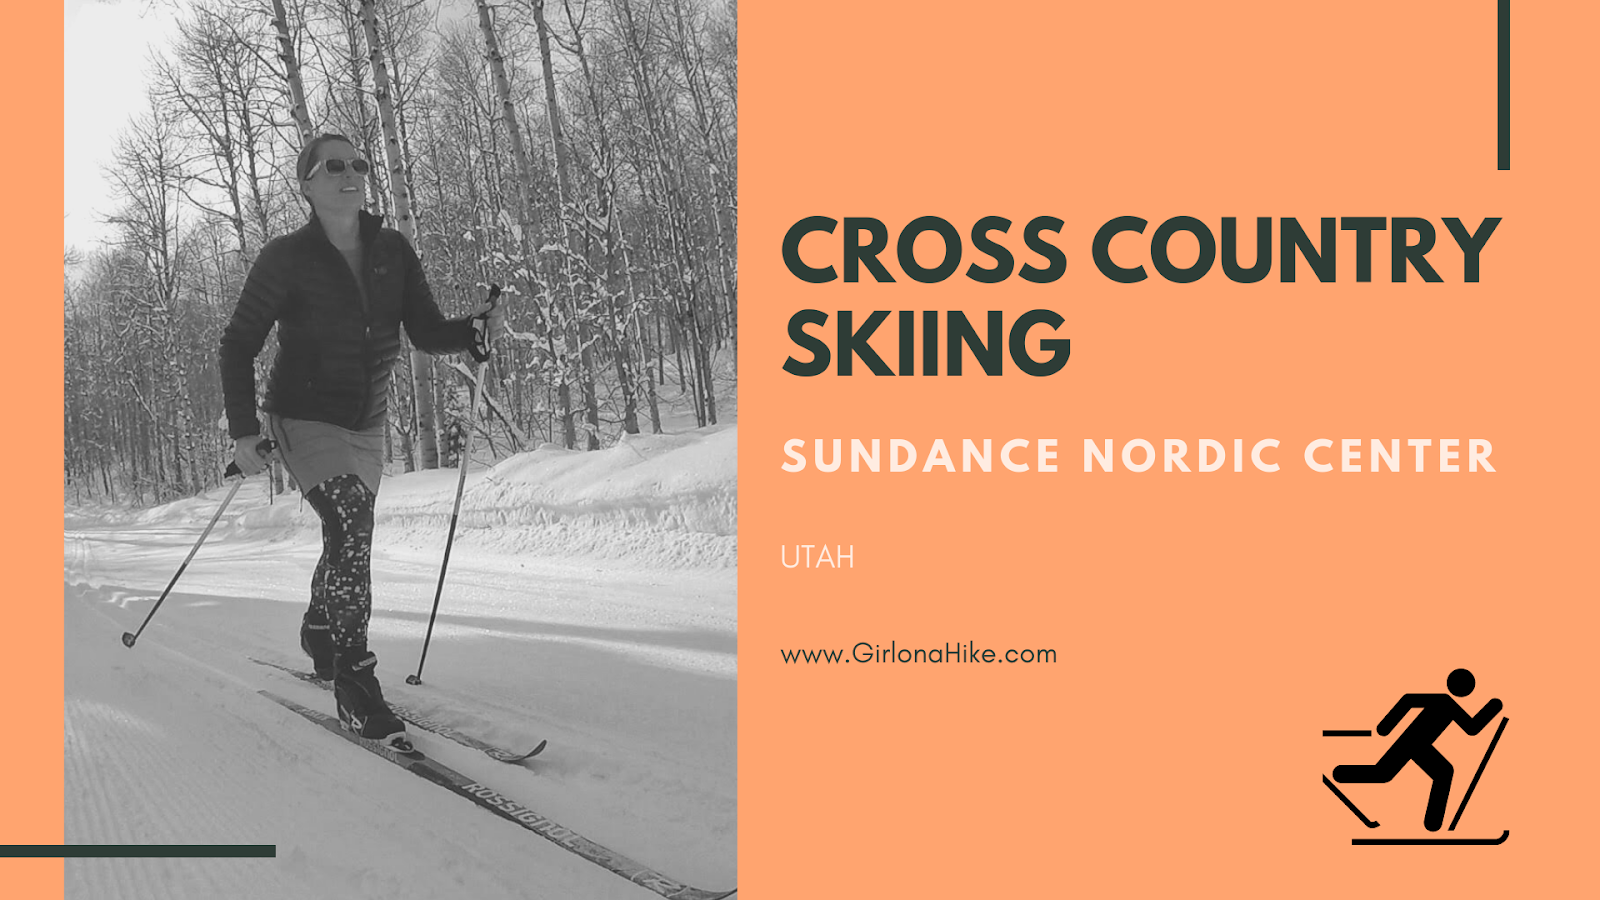 Cross Country Skiing at Sundance Nordic Center!